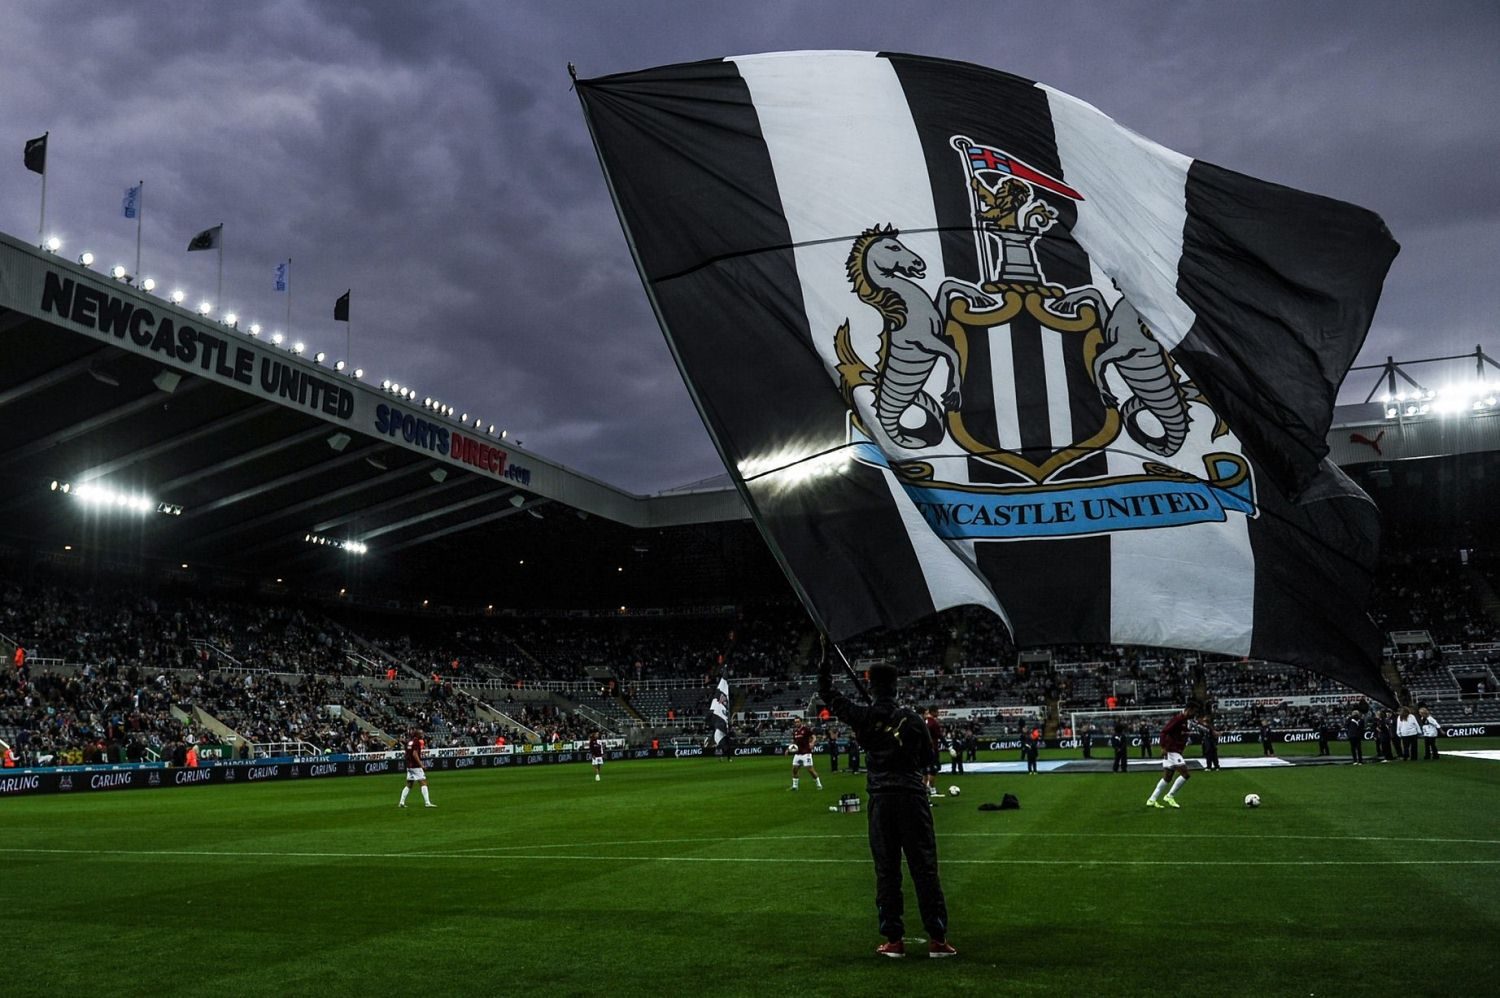 NEWCASTLE UNITED PARTNERS WITH CRYPTO COMPANY